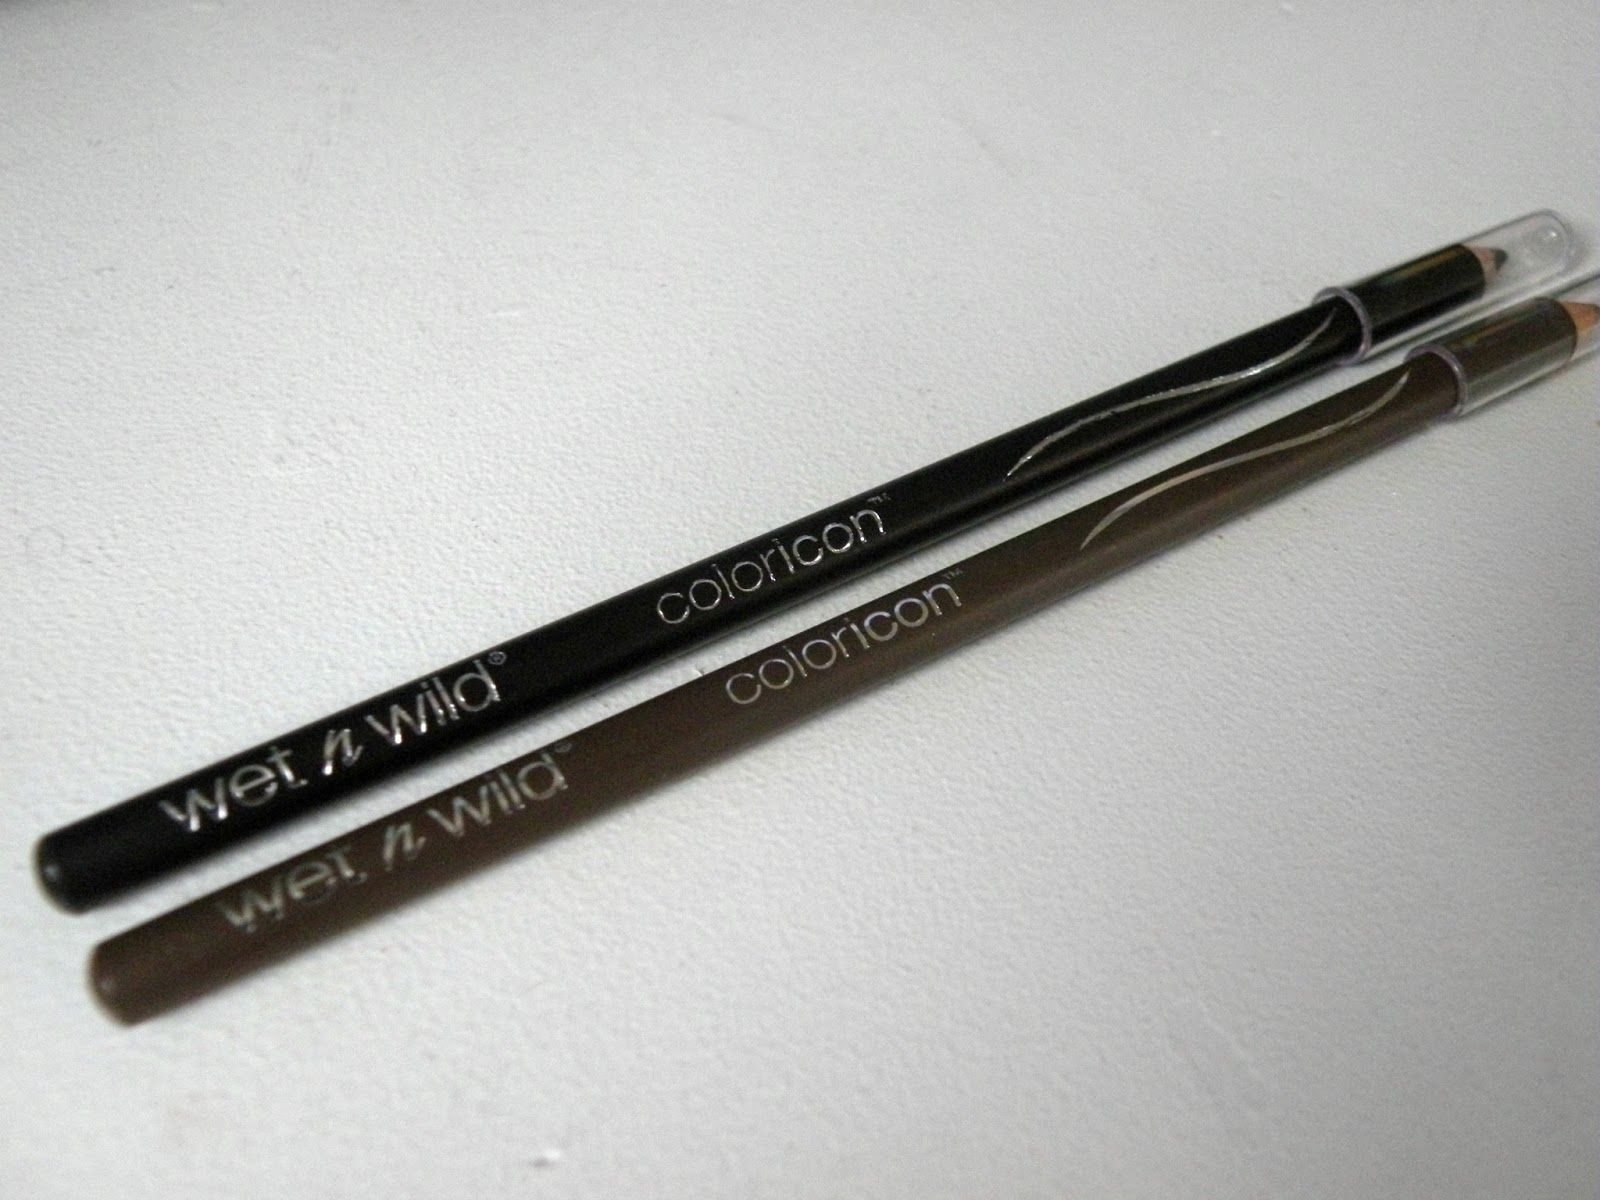 Beauddicted Wet N Wild Coloricon Brow Eye Liner Review